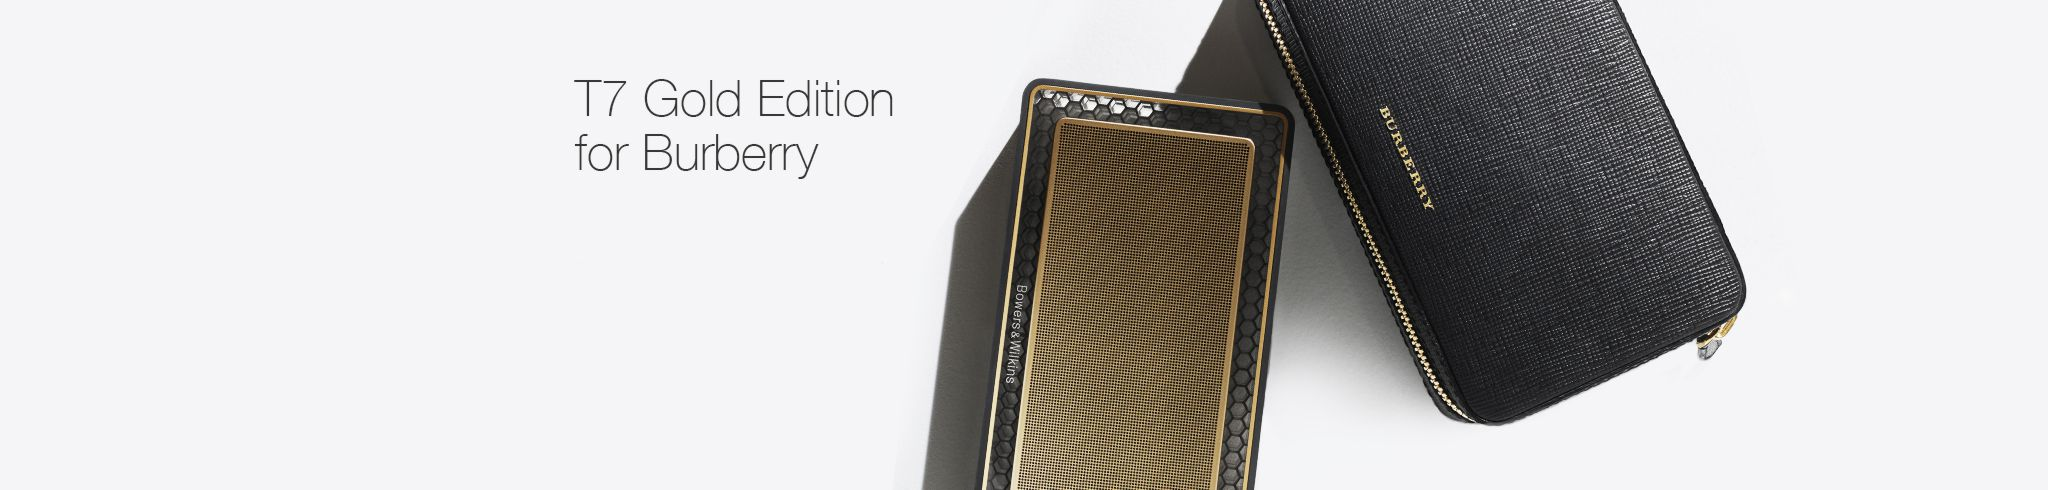 Homepage-banner_T7-Burberry_2